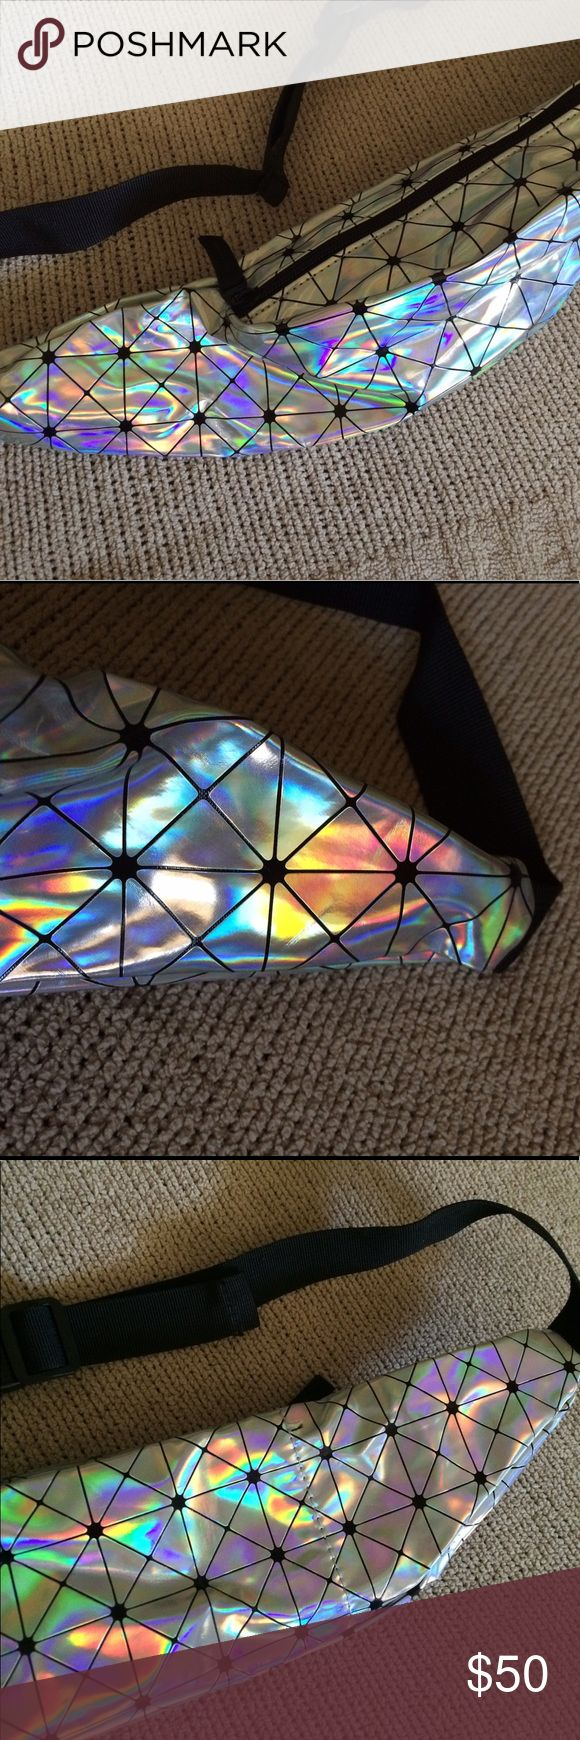 💥SALE Iridescent prism✨ festival fanny pack! 🆕 Brand new and never worn fanny pack! Holds a lot for its compact size and is a shiny silver iridescent color! Features black prisms and is perfect for your next music festival, rave, etc :-) made from vegan leather 💓 ✅UNIF for exposure UNIF Accessories